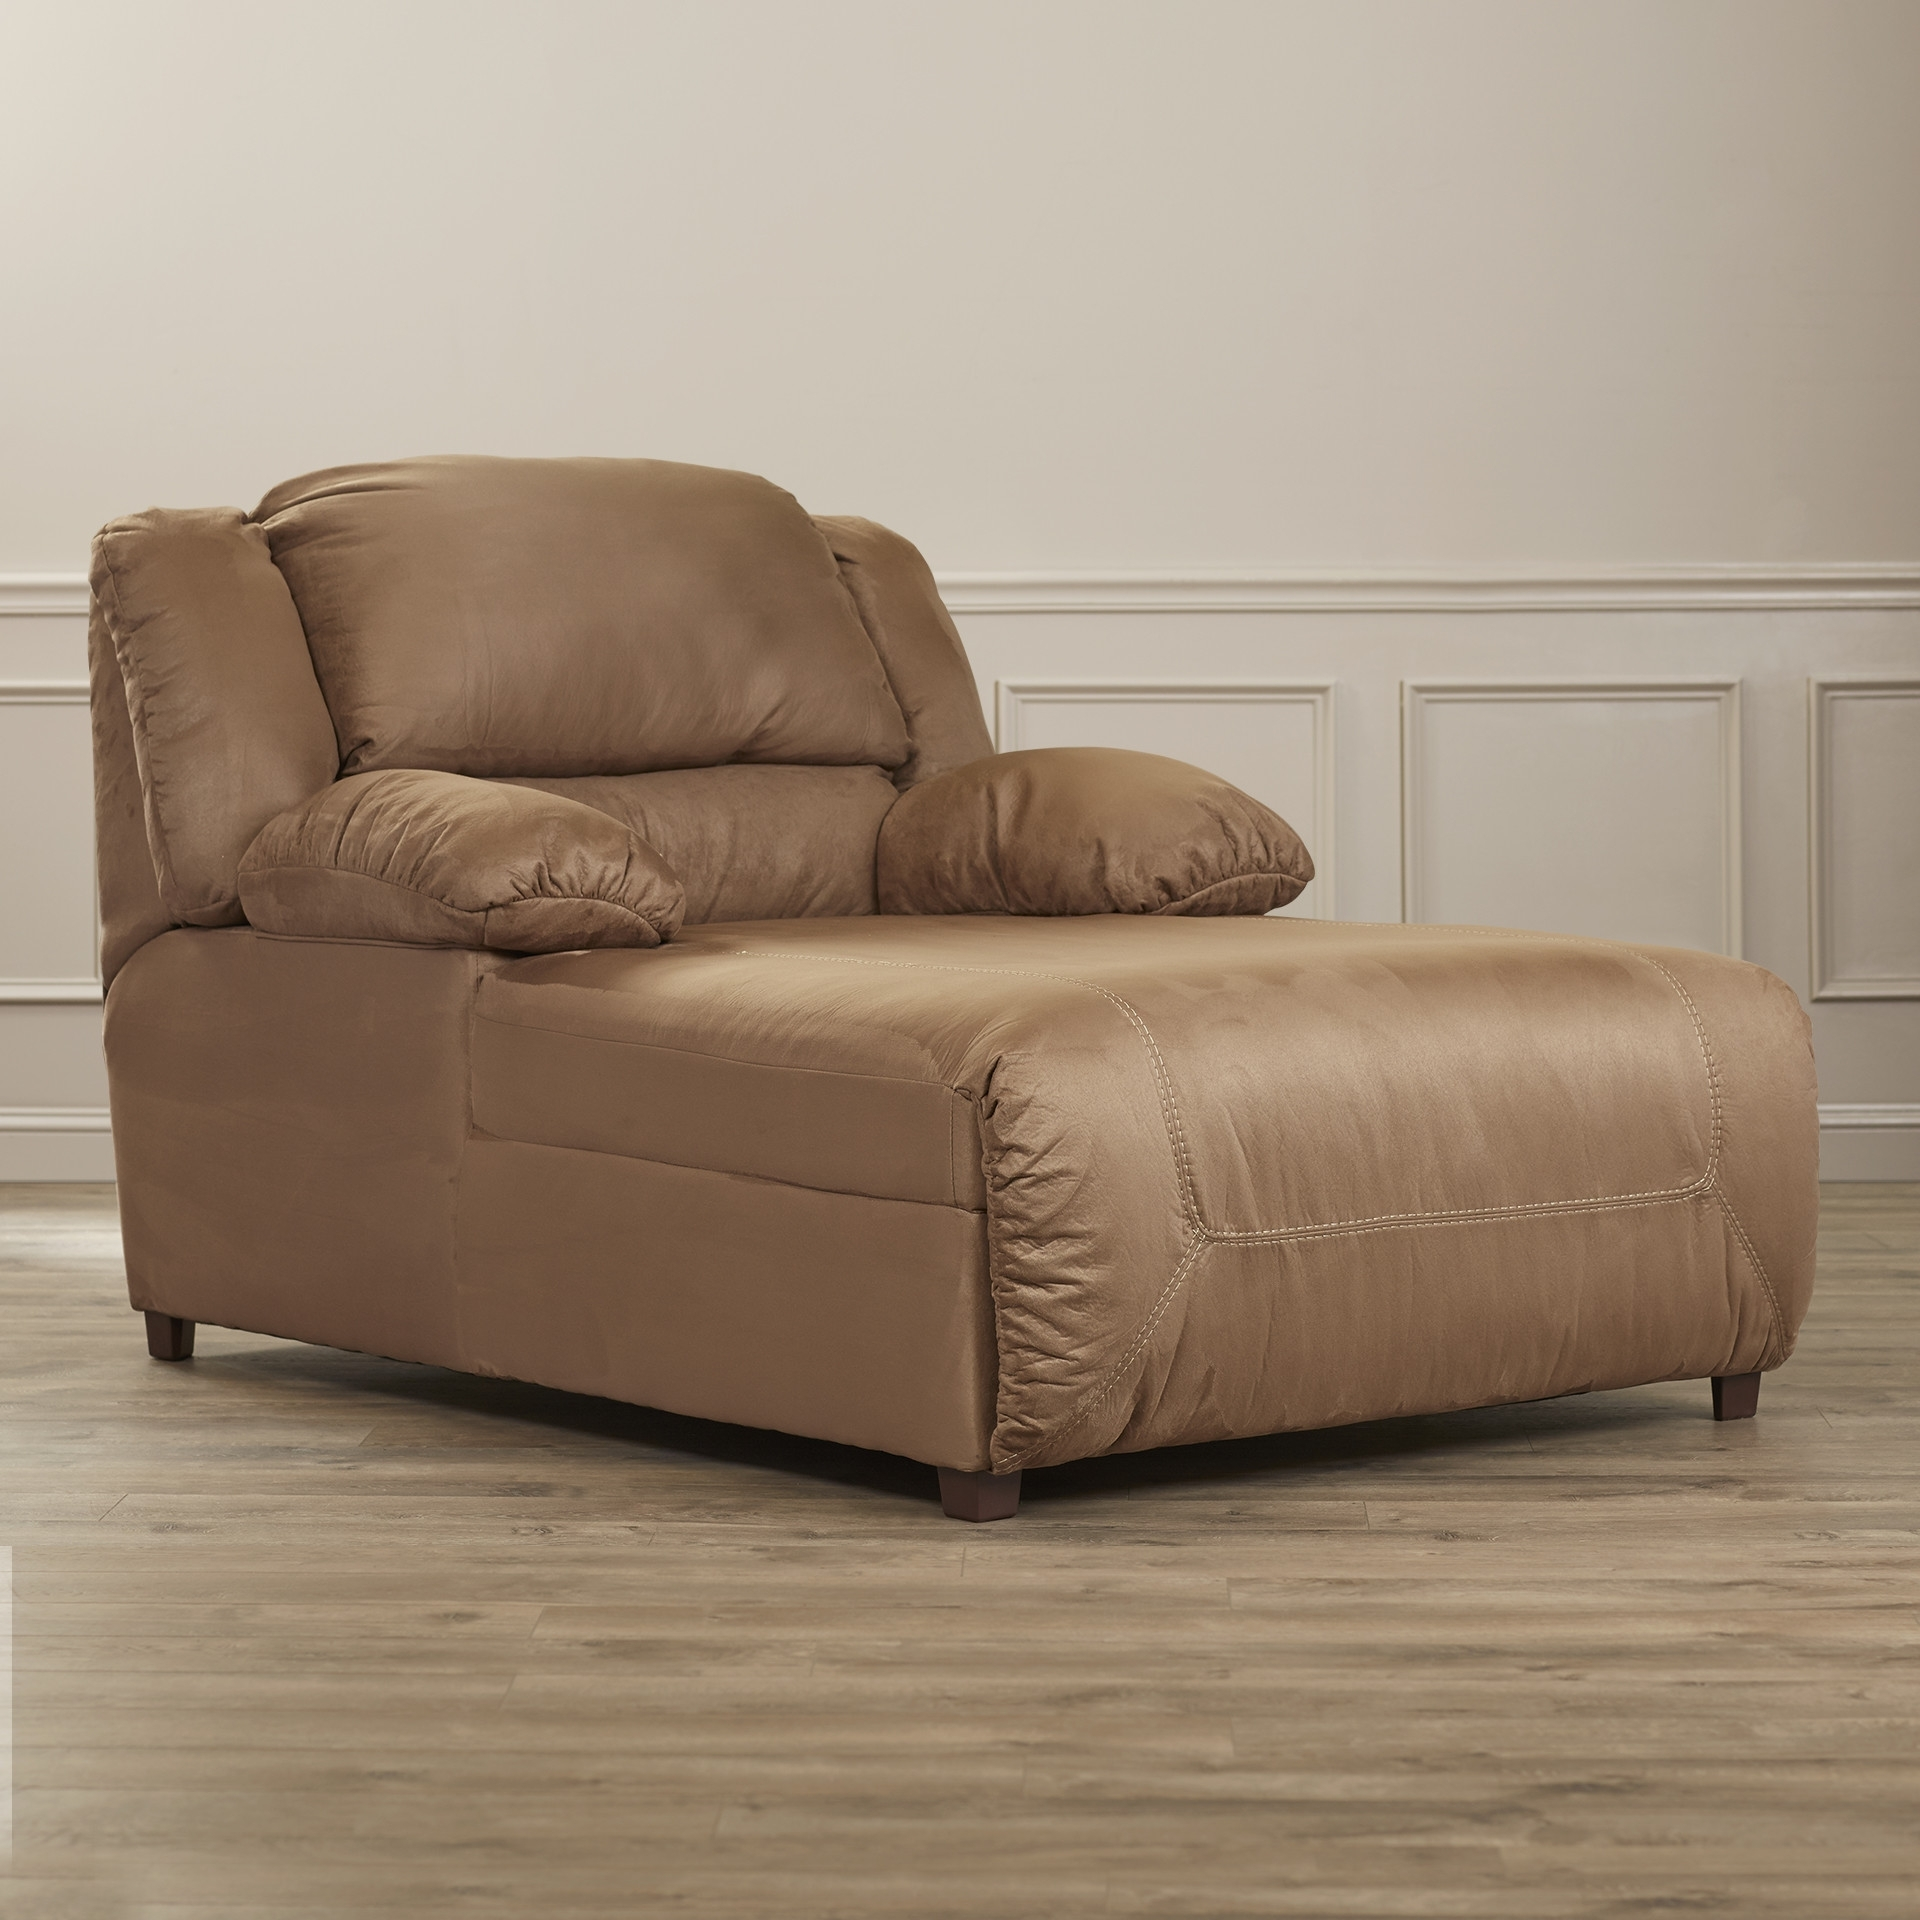 Reclining Chaise Lounges With Regard To Most Popular Reclining Chaise Lounge Chair Indoor – Modern Chairs Quality (View 12 of 15)